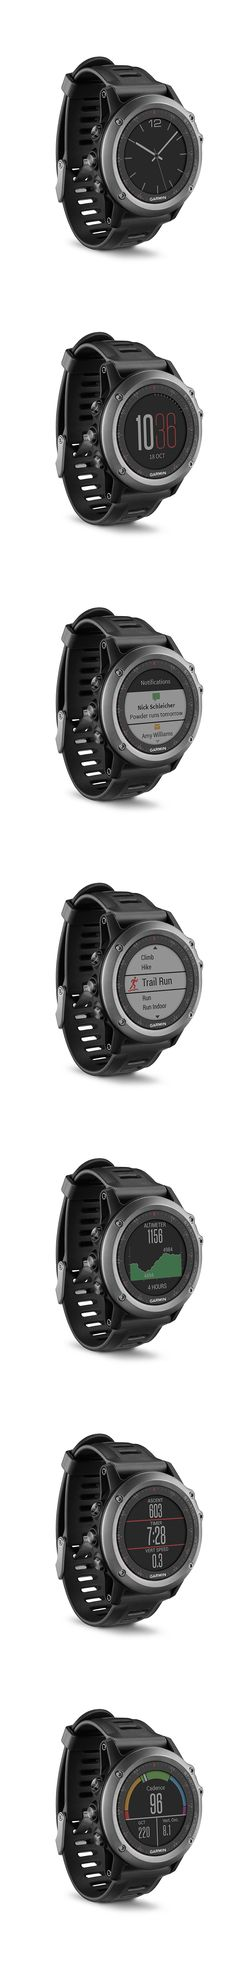 World's first adventure sport training Garmin GPS/GLONASS watch. #Fenix3 fenix3.garmin.com/en-US